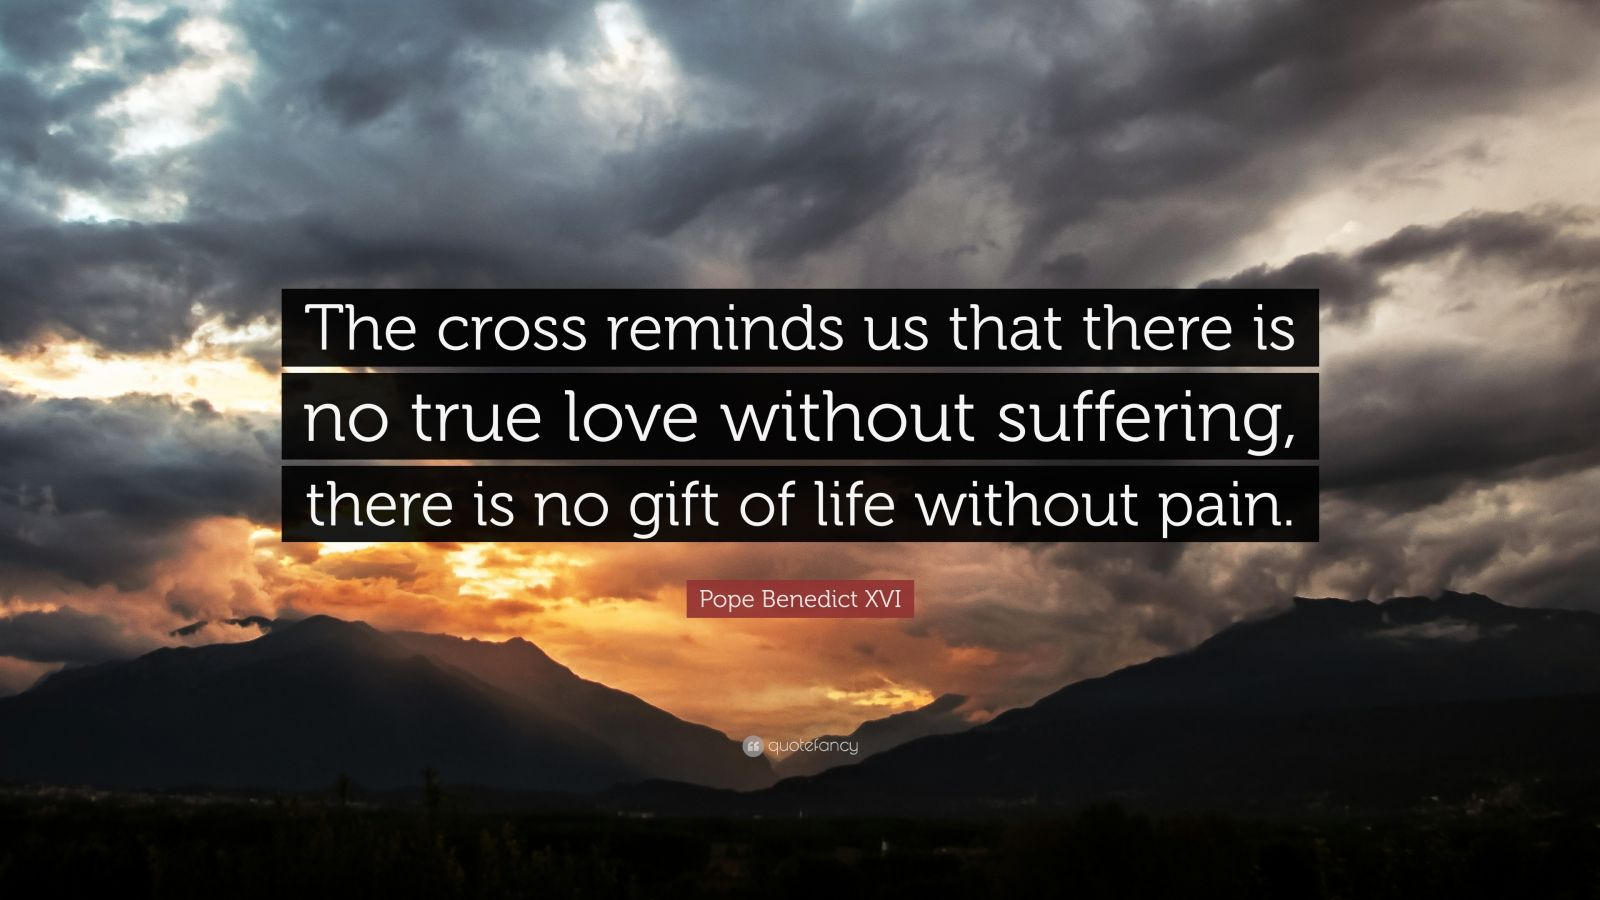 """Pope Benedict XVI Quote: """"The cross reminds us that there is no true love without suffering, there is no gift of life without pain."""""""